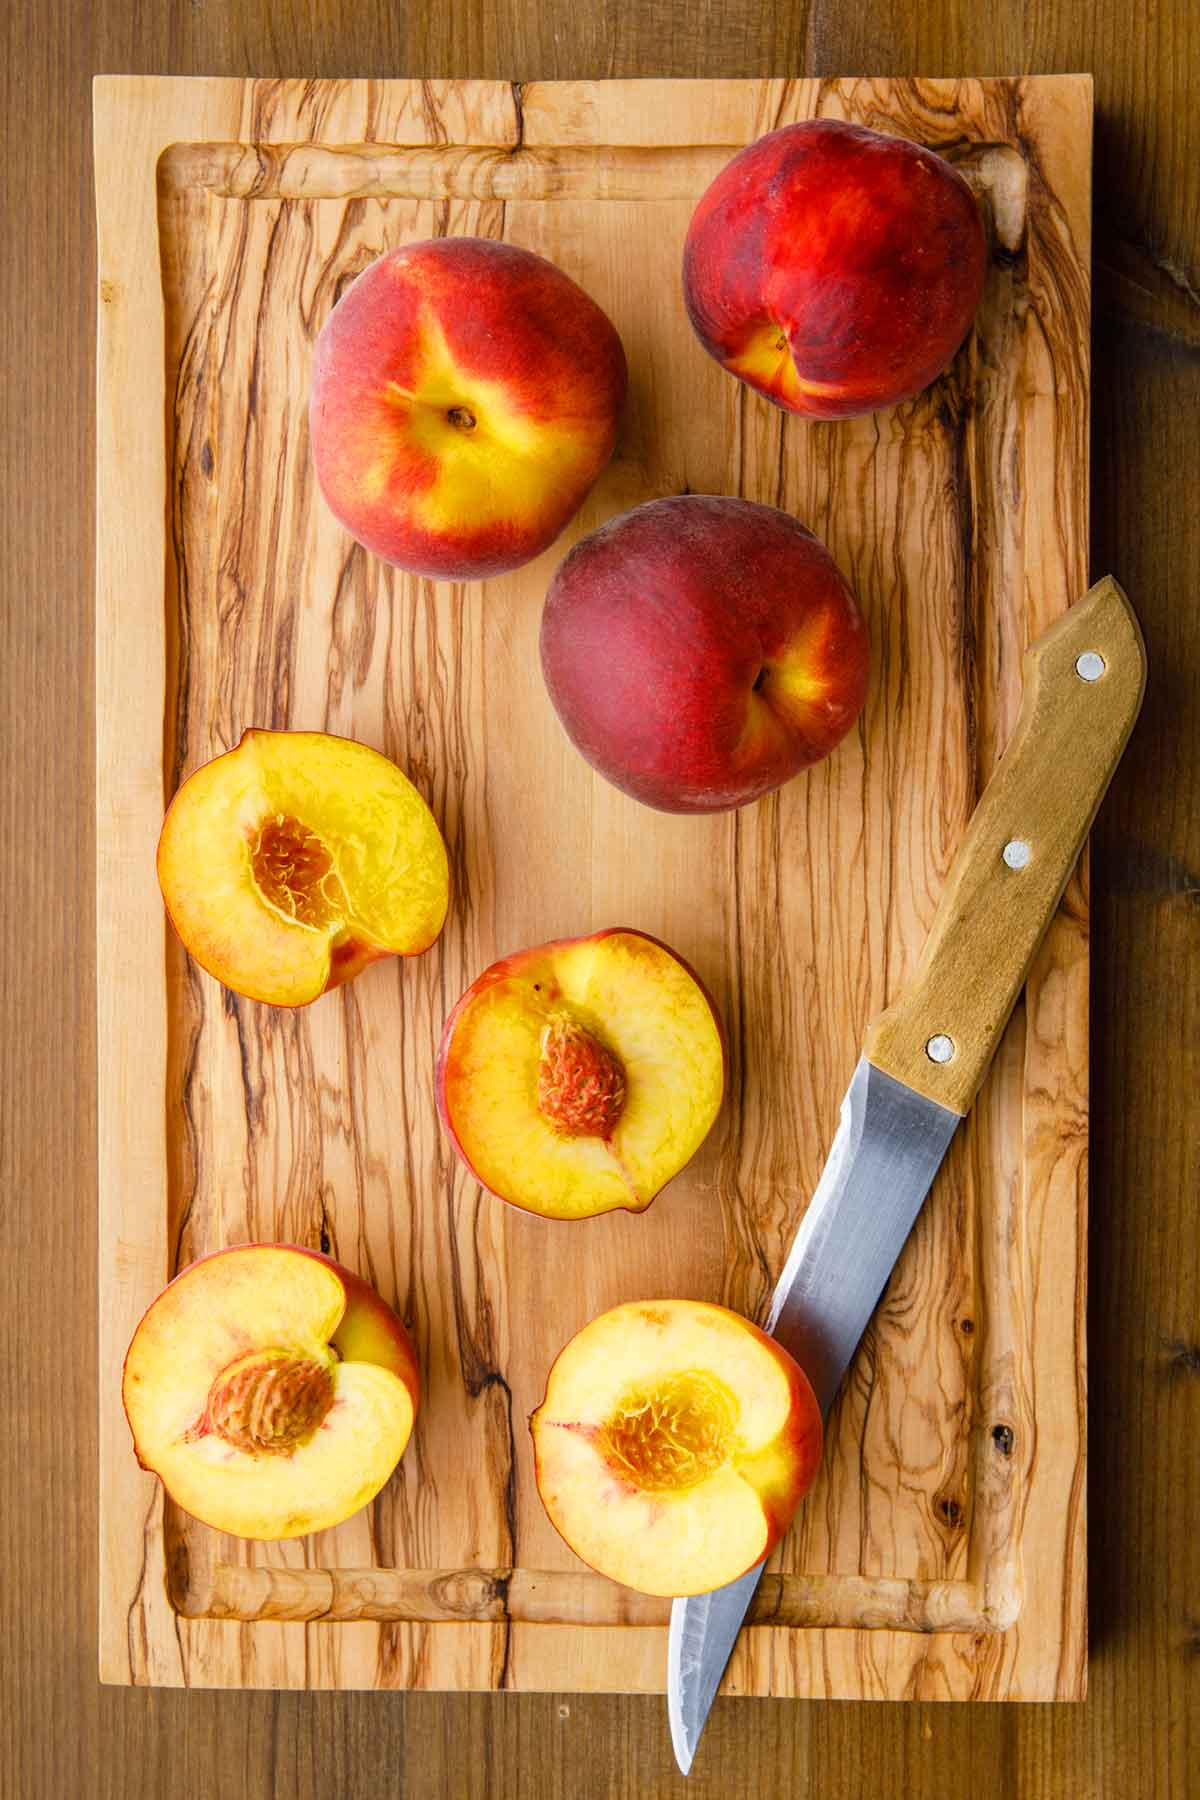 cutting the peaches